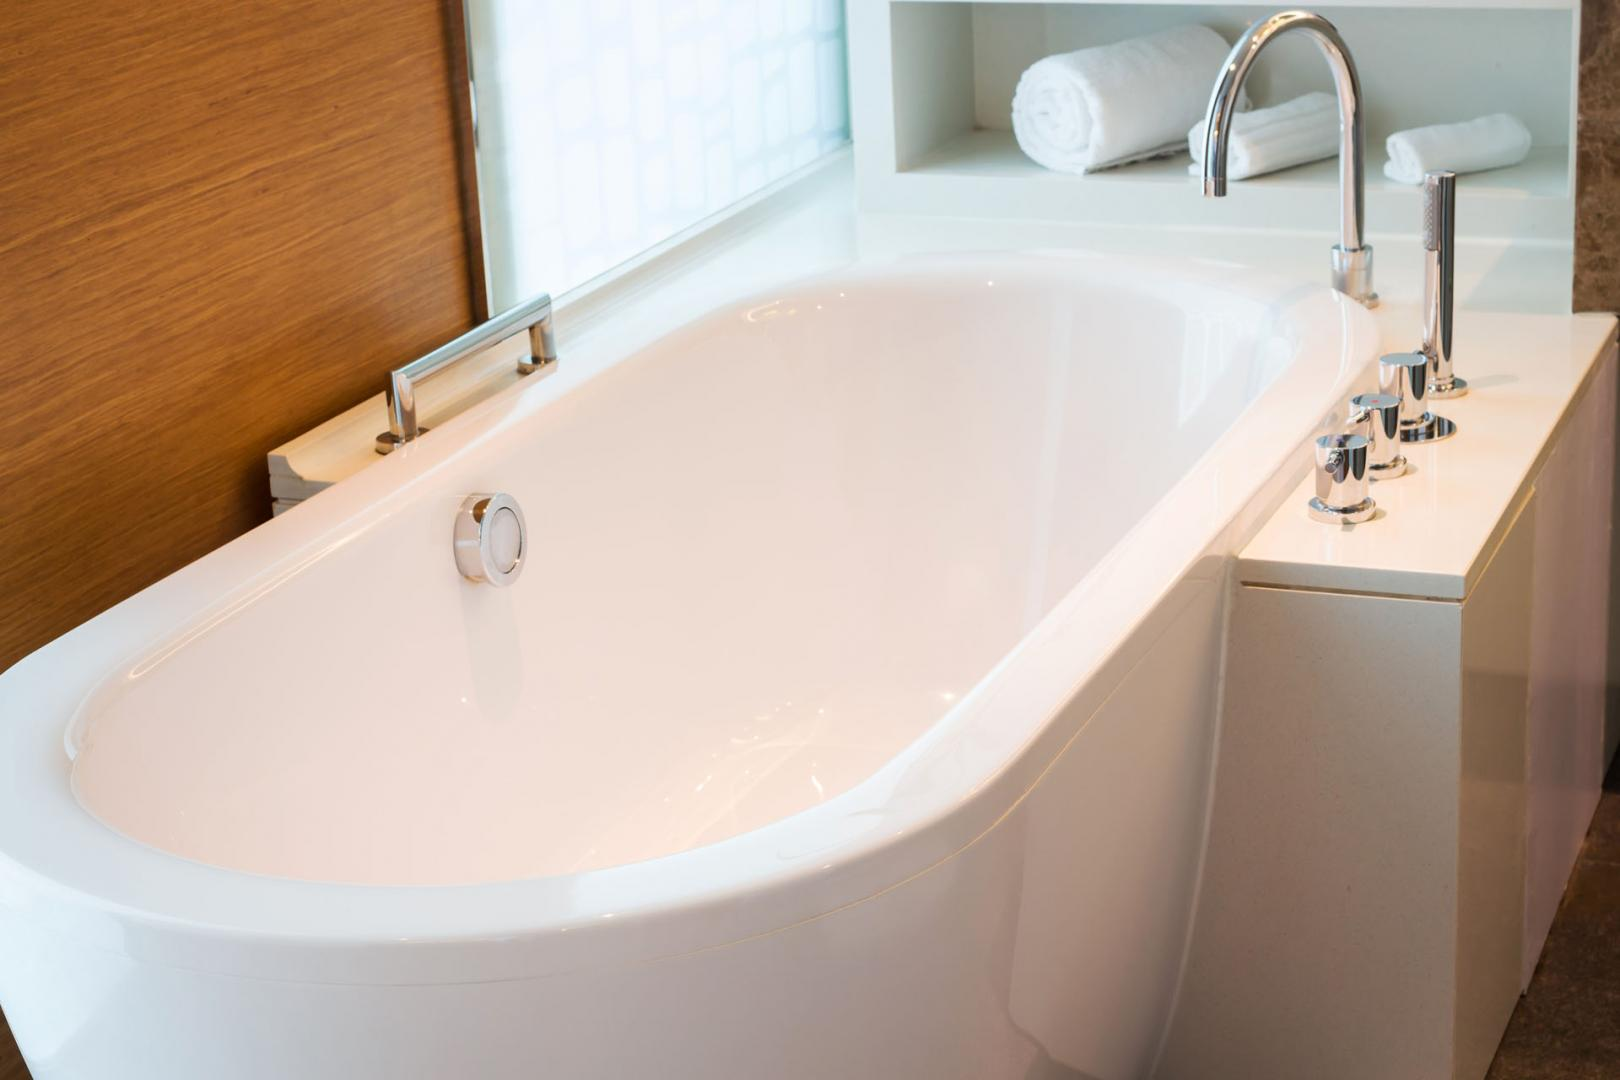 Bathtub Restoration Miami Miami Dade Broward ESTEBAN ALFONSO REFINISHING CORP